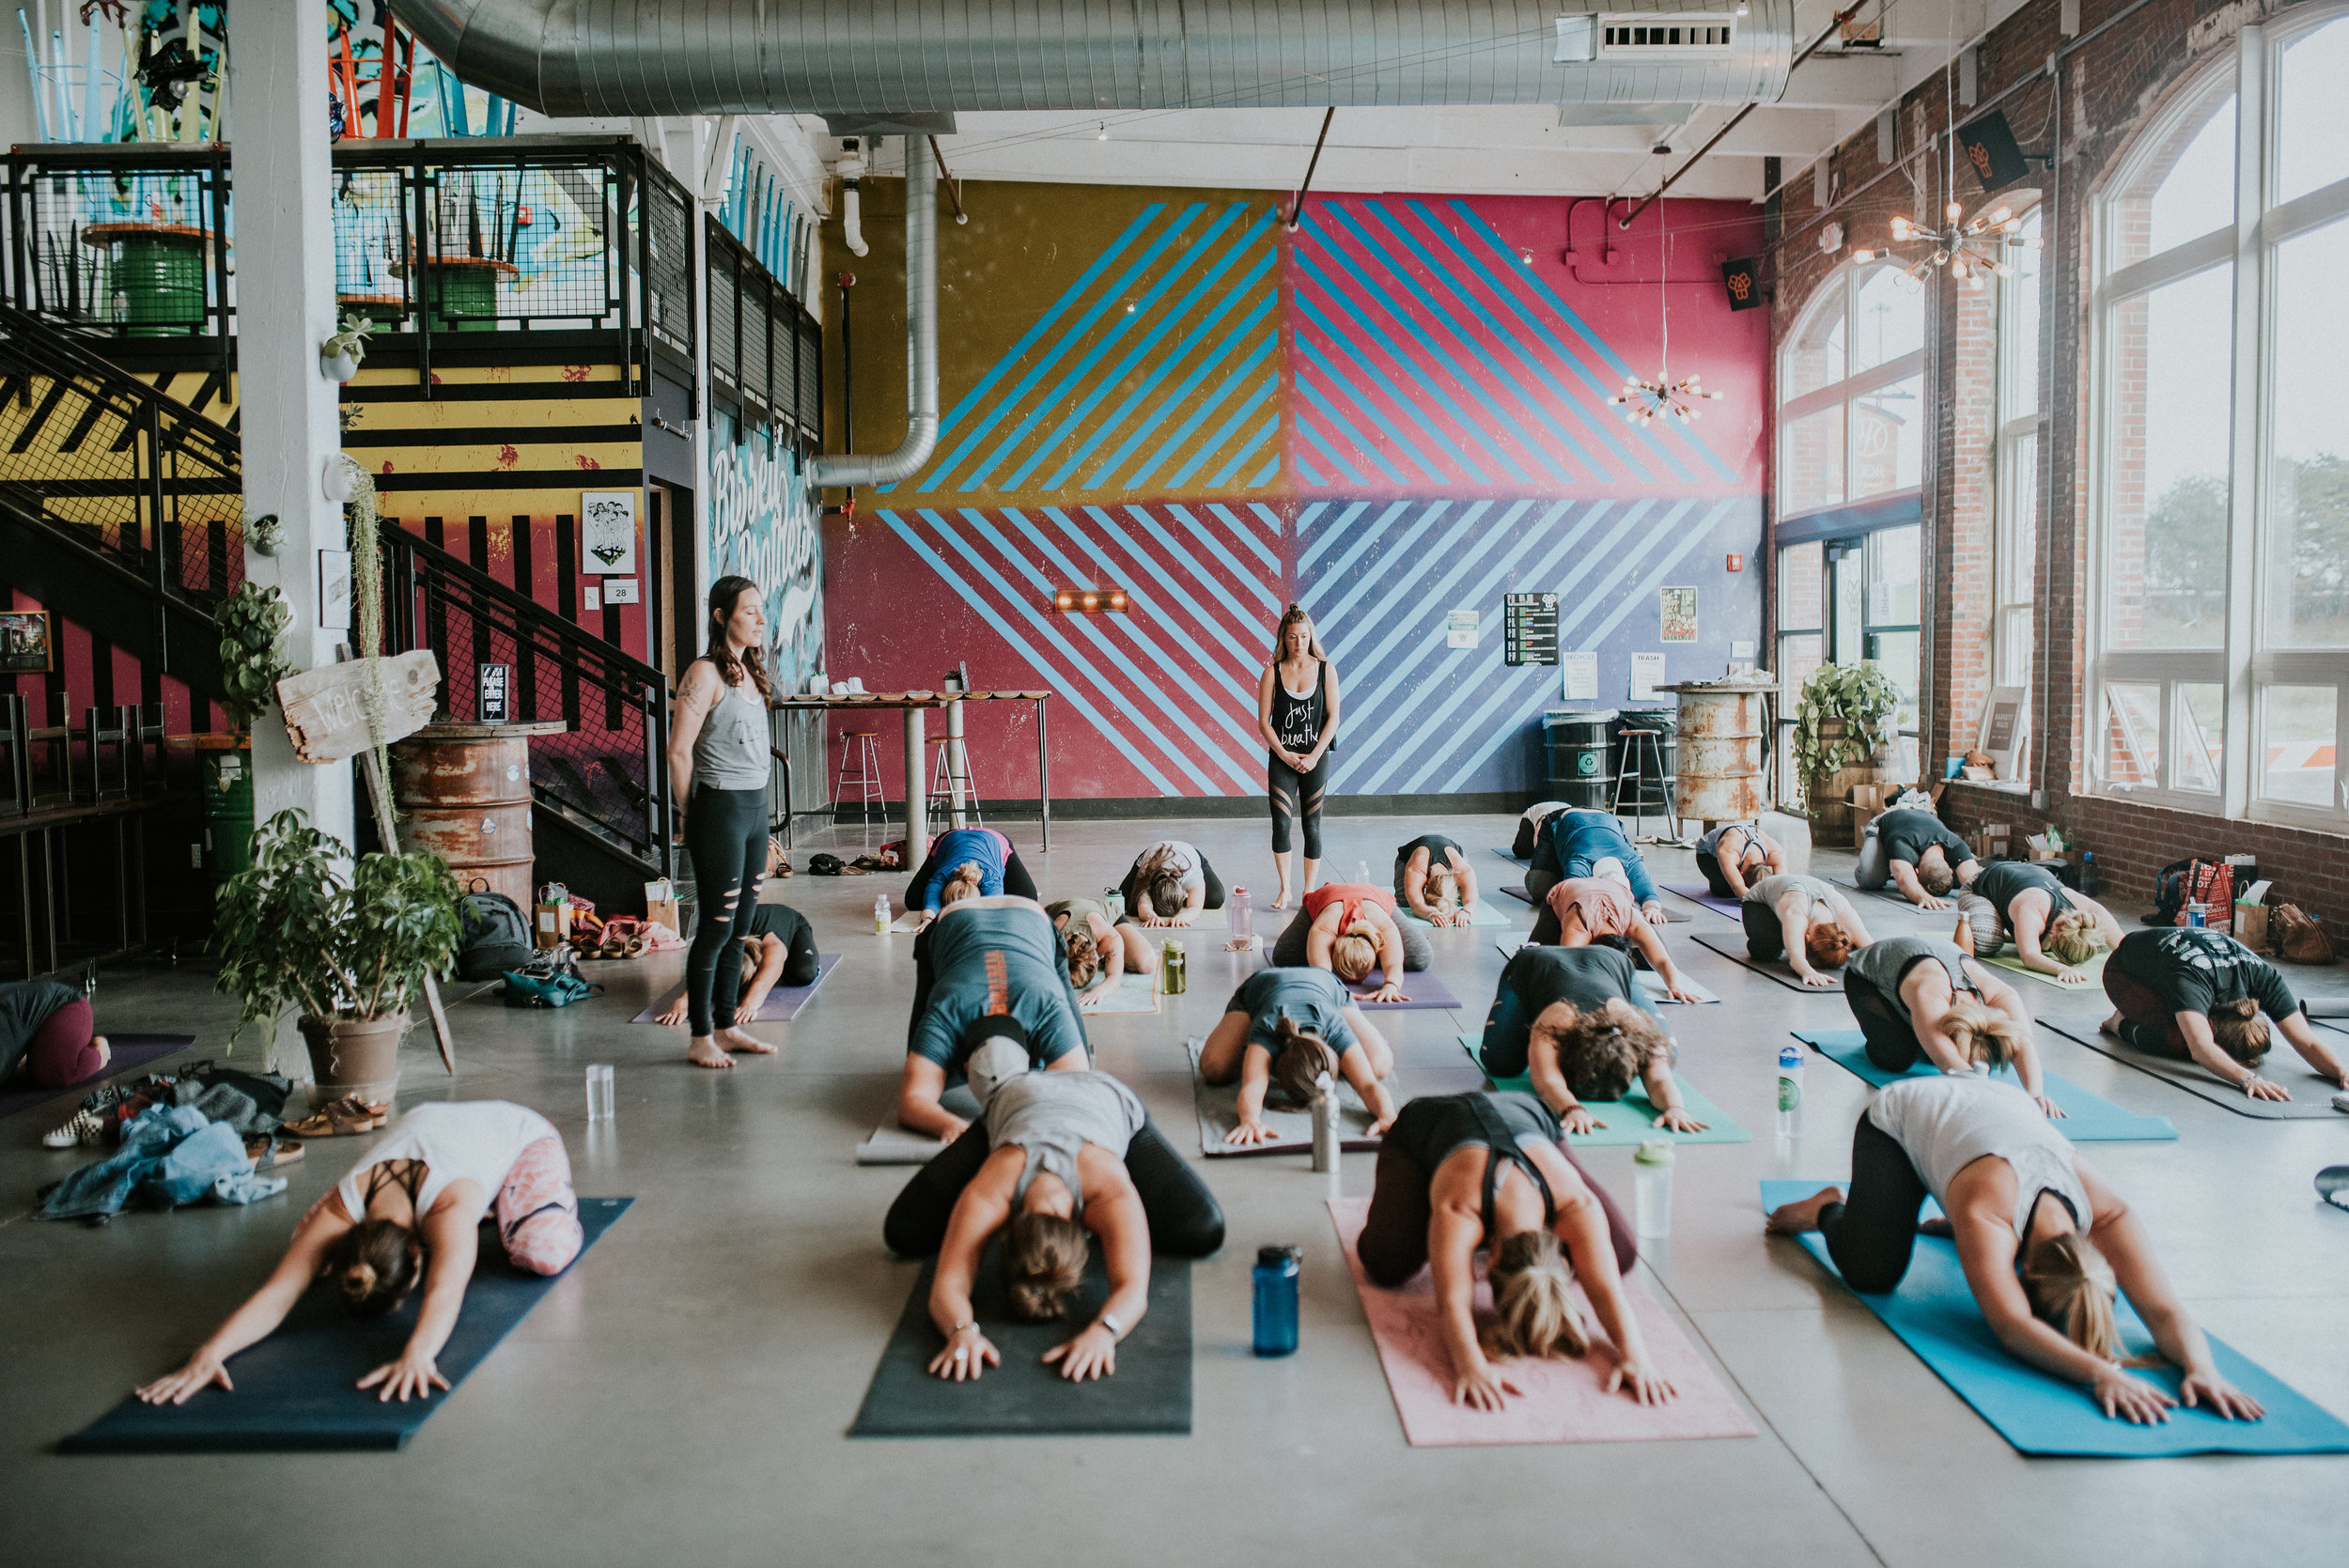 Be Well Yoga / May 21st, 2017